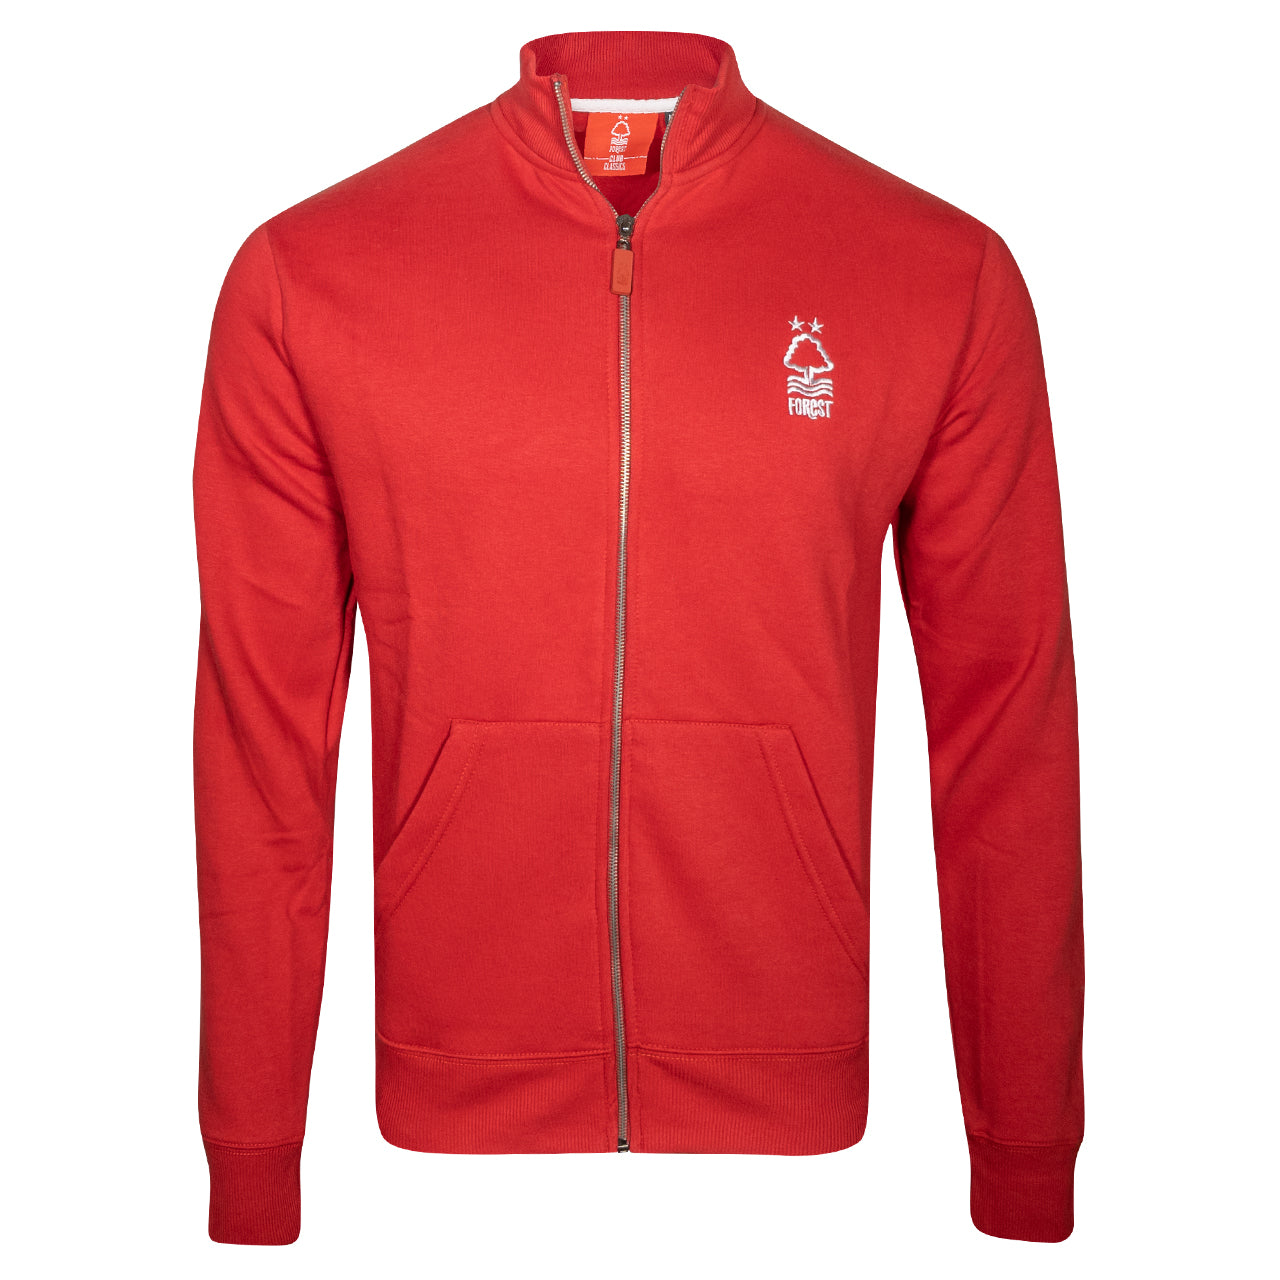 NFFC Mens Red Essential Track Top